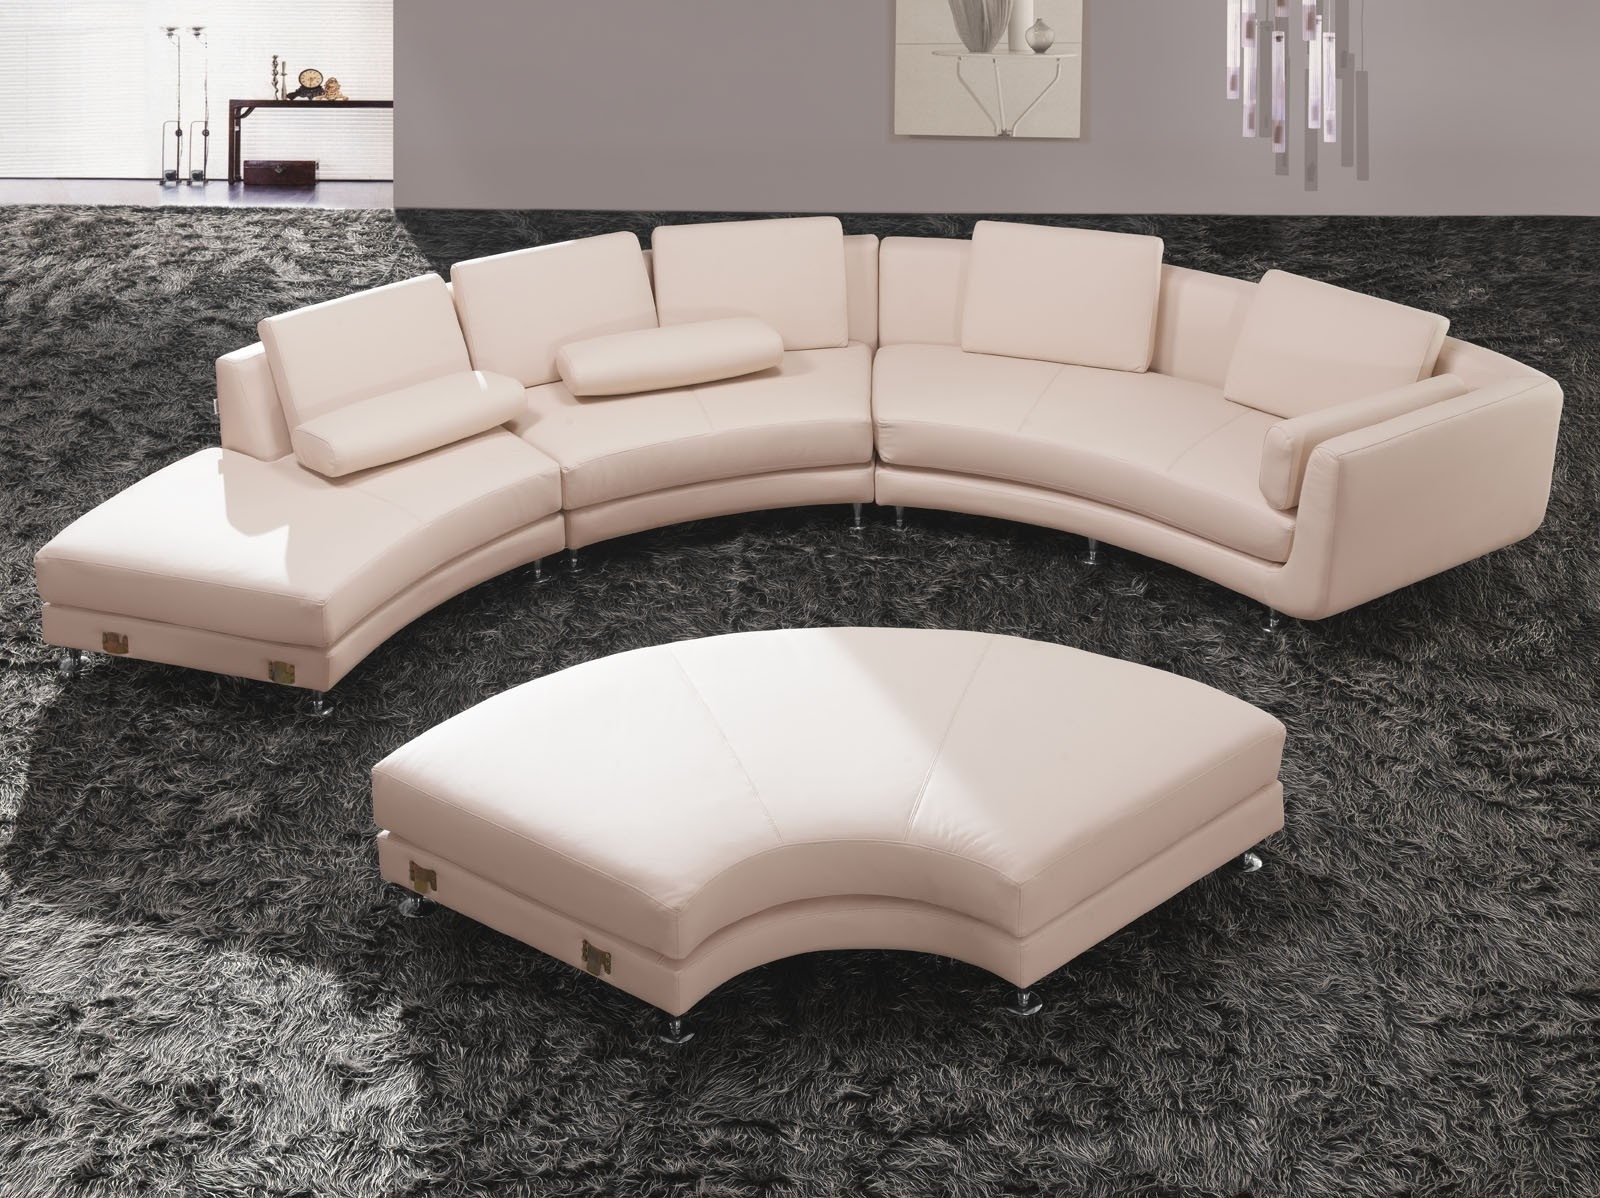 Best And Newest Sofa : Glamorous Round Sectional Sofa Bed Curved Leather Tufted With Circular Sectional Sofas (View 6 of 15)